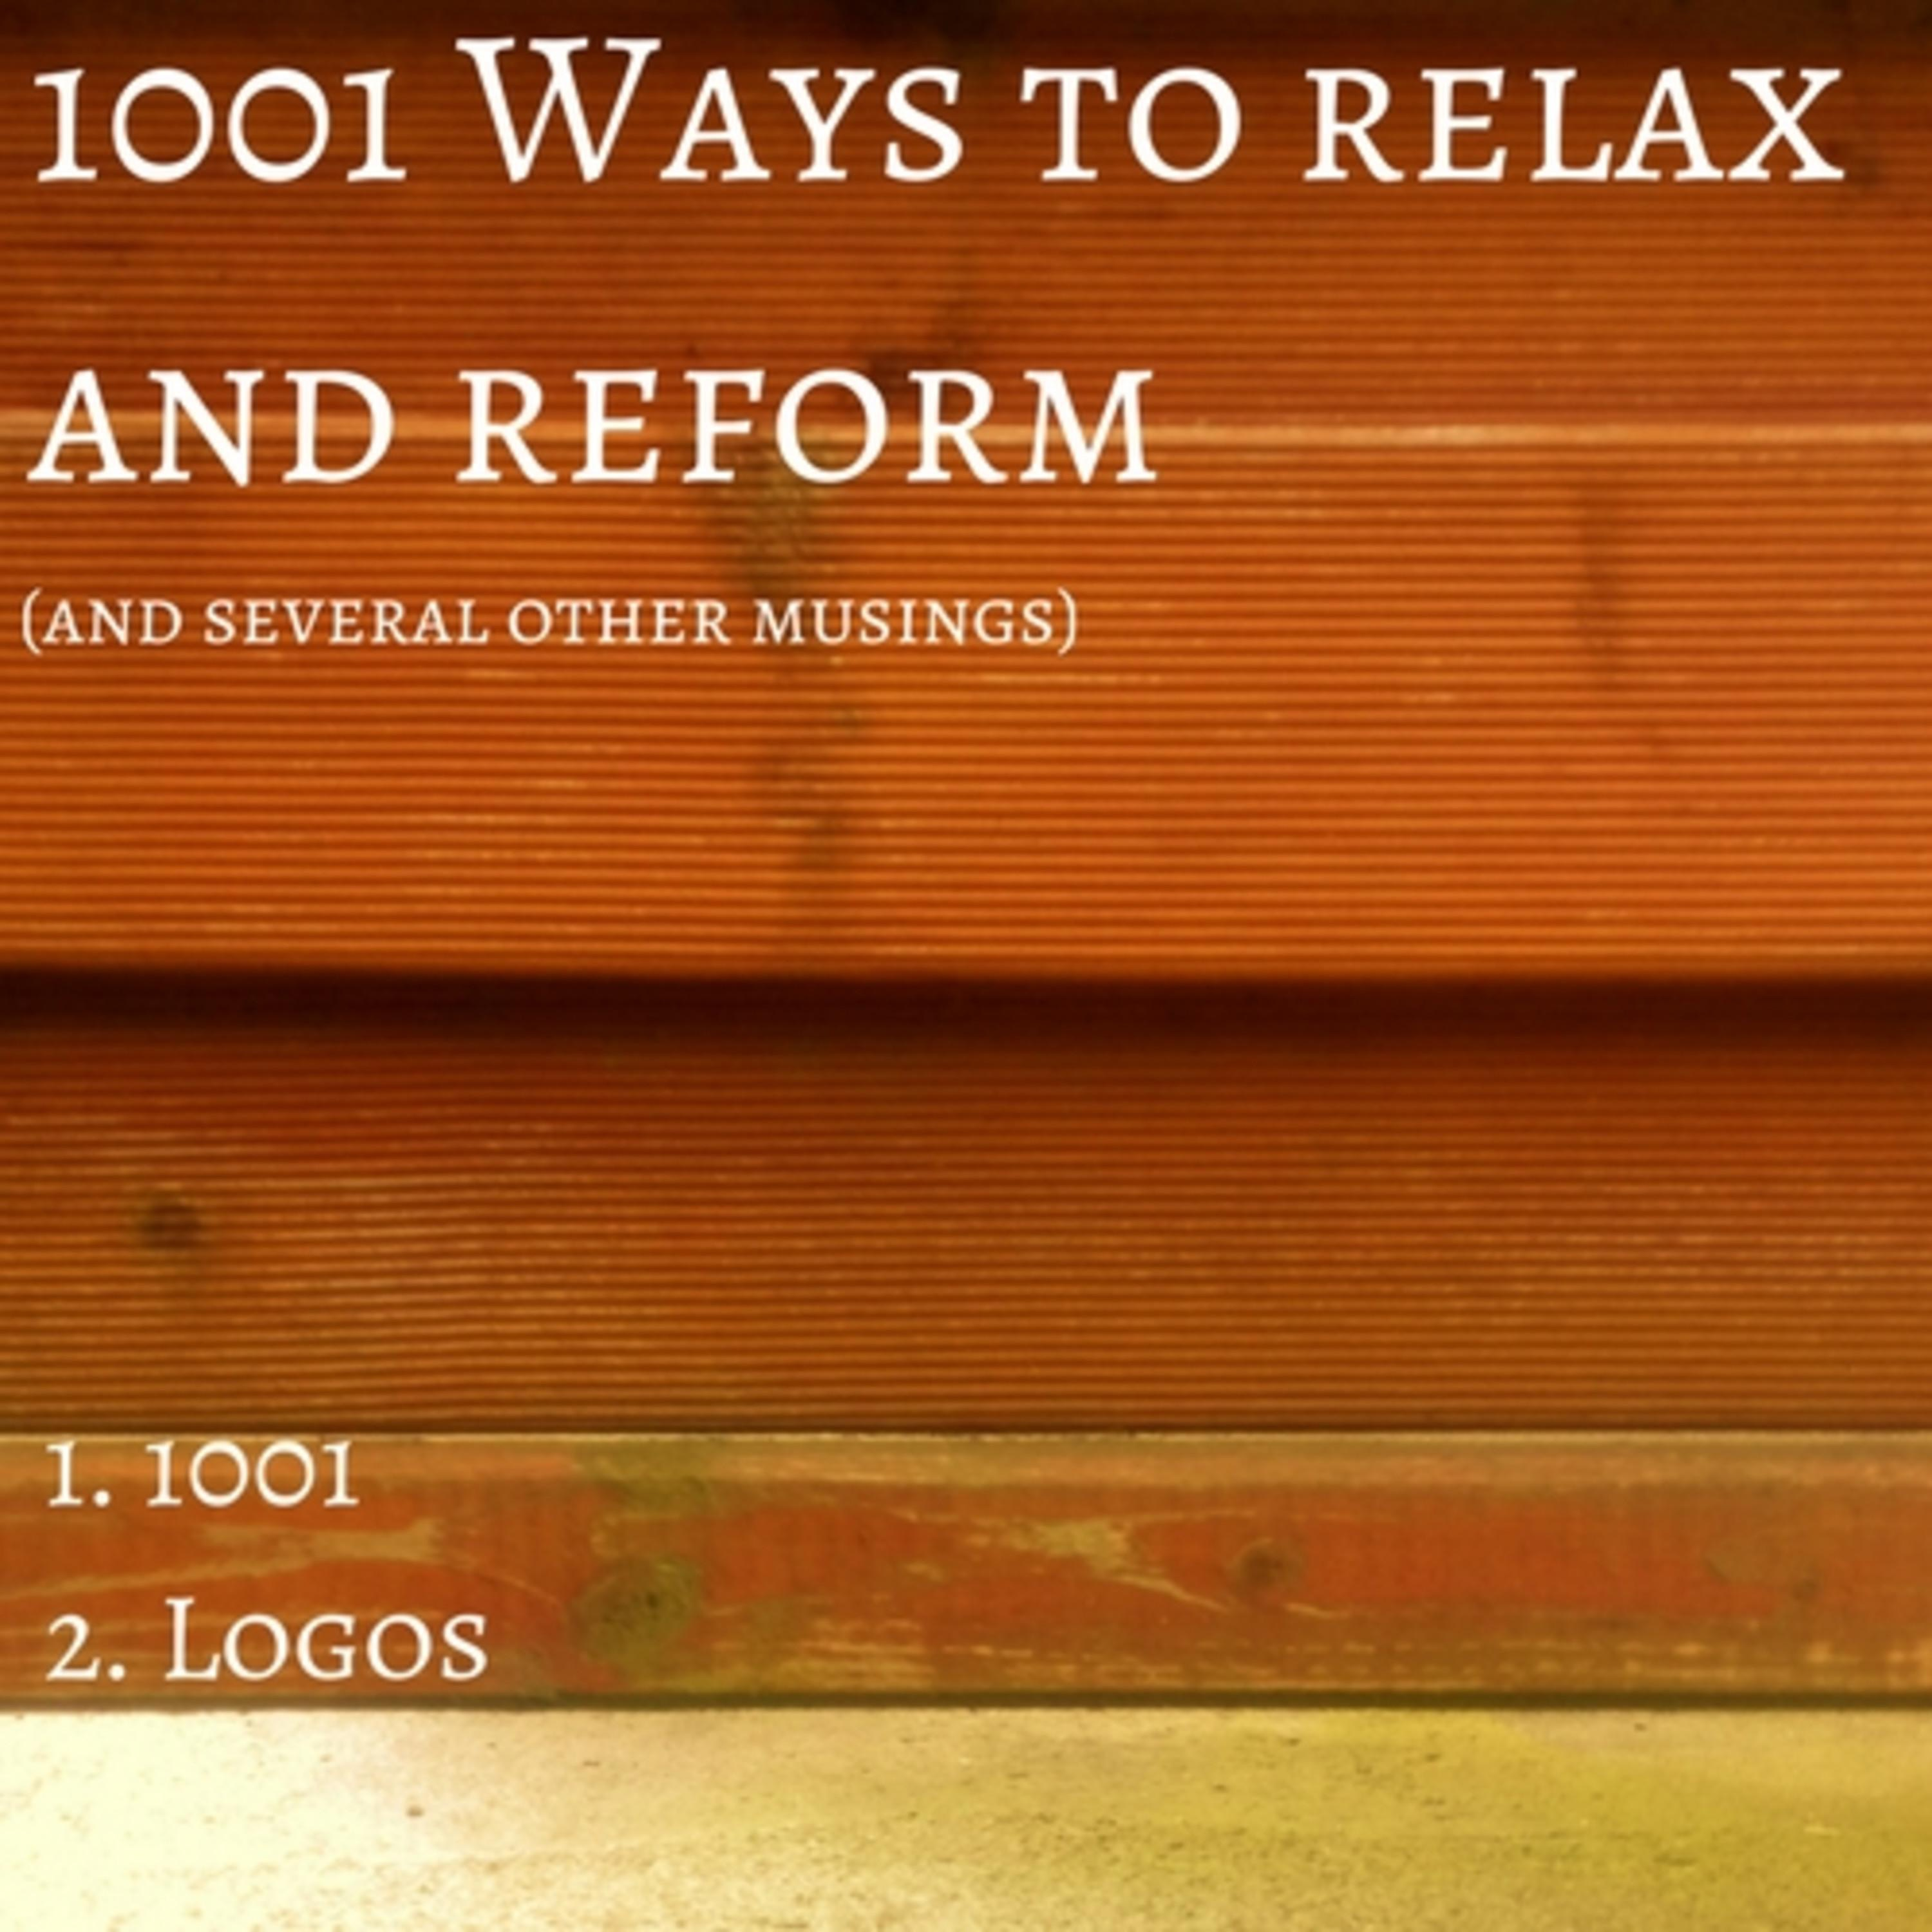 1001 Ways to Relax and Reform (And Several Other Musings) - Single